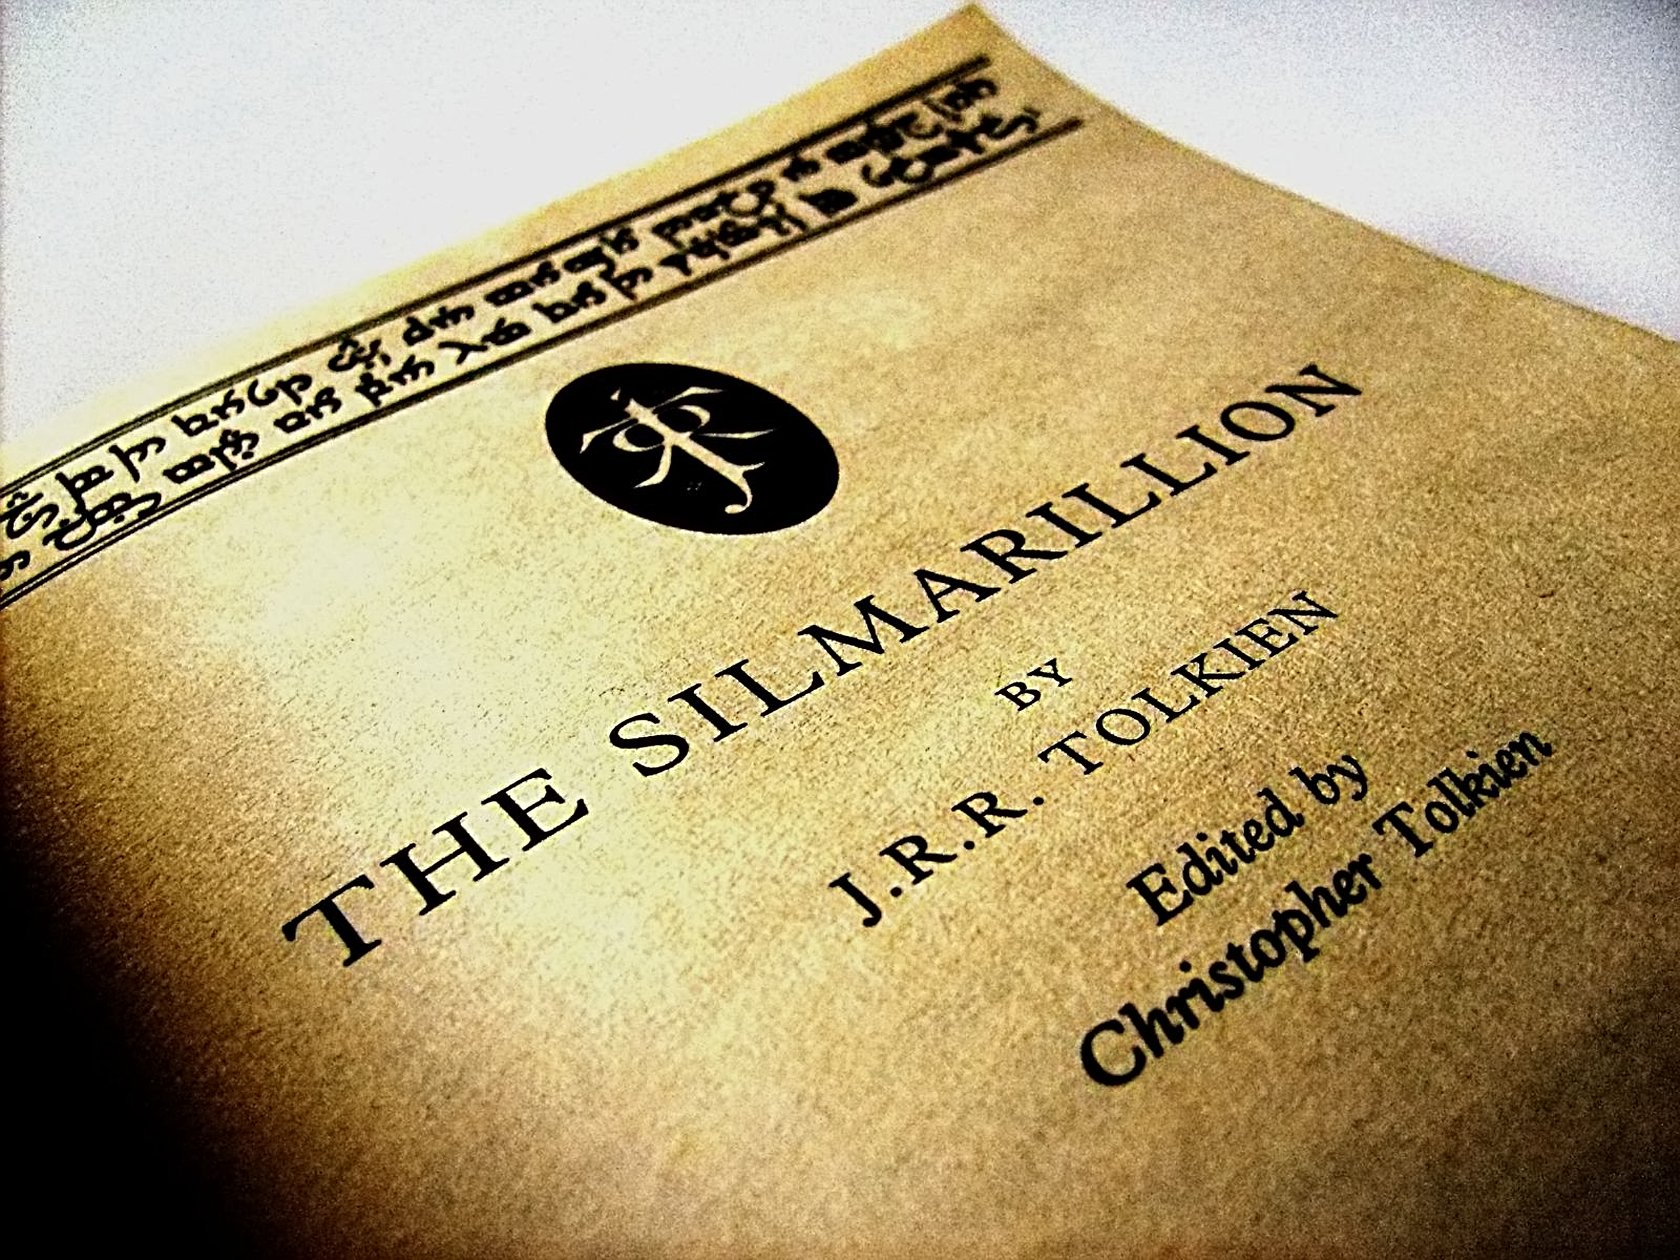 """The title page, of the book """"The Silmarillion"""" by J.R.R. Tolkien, edited and published by his son Christopher Tolkien. shared on April 2008 